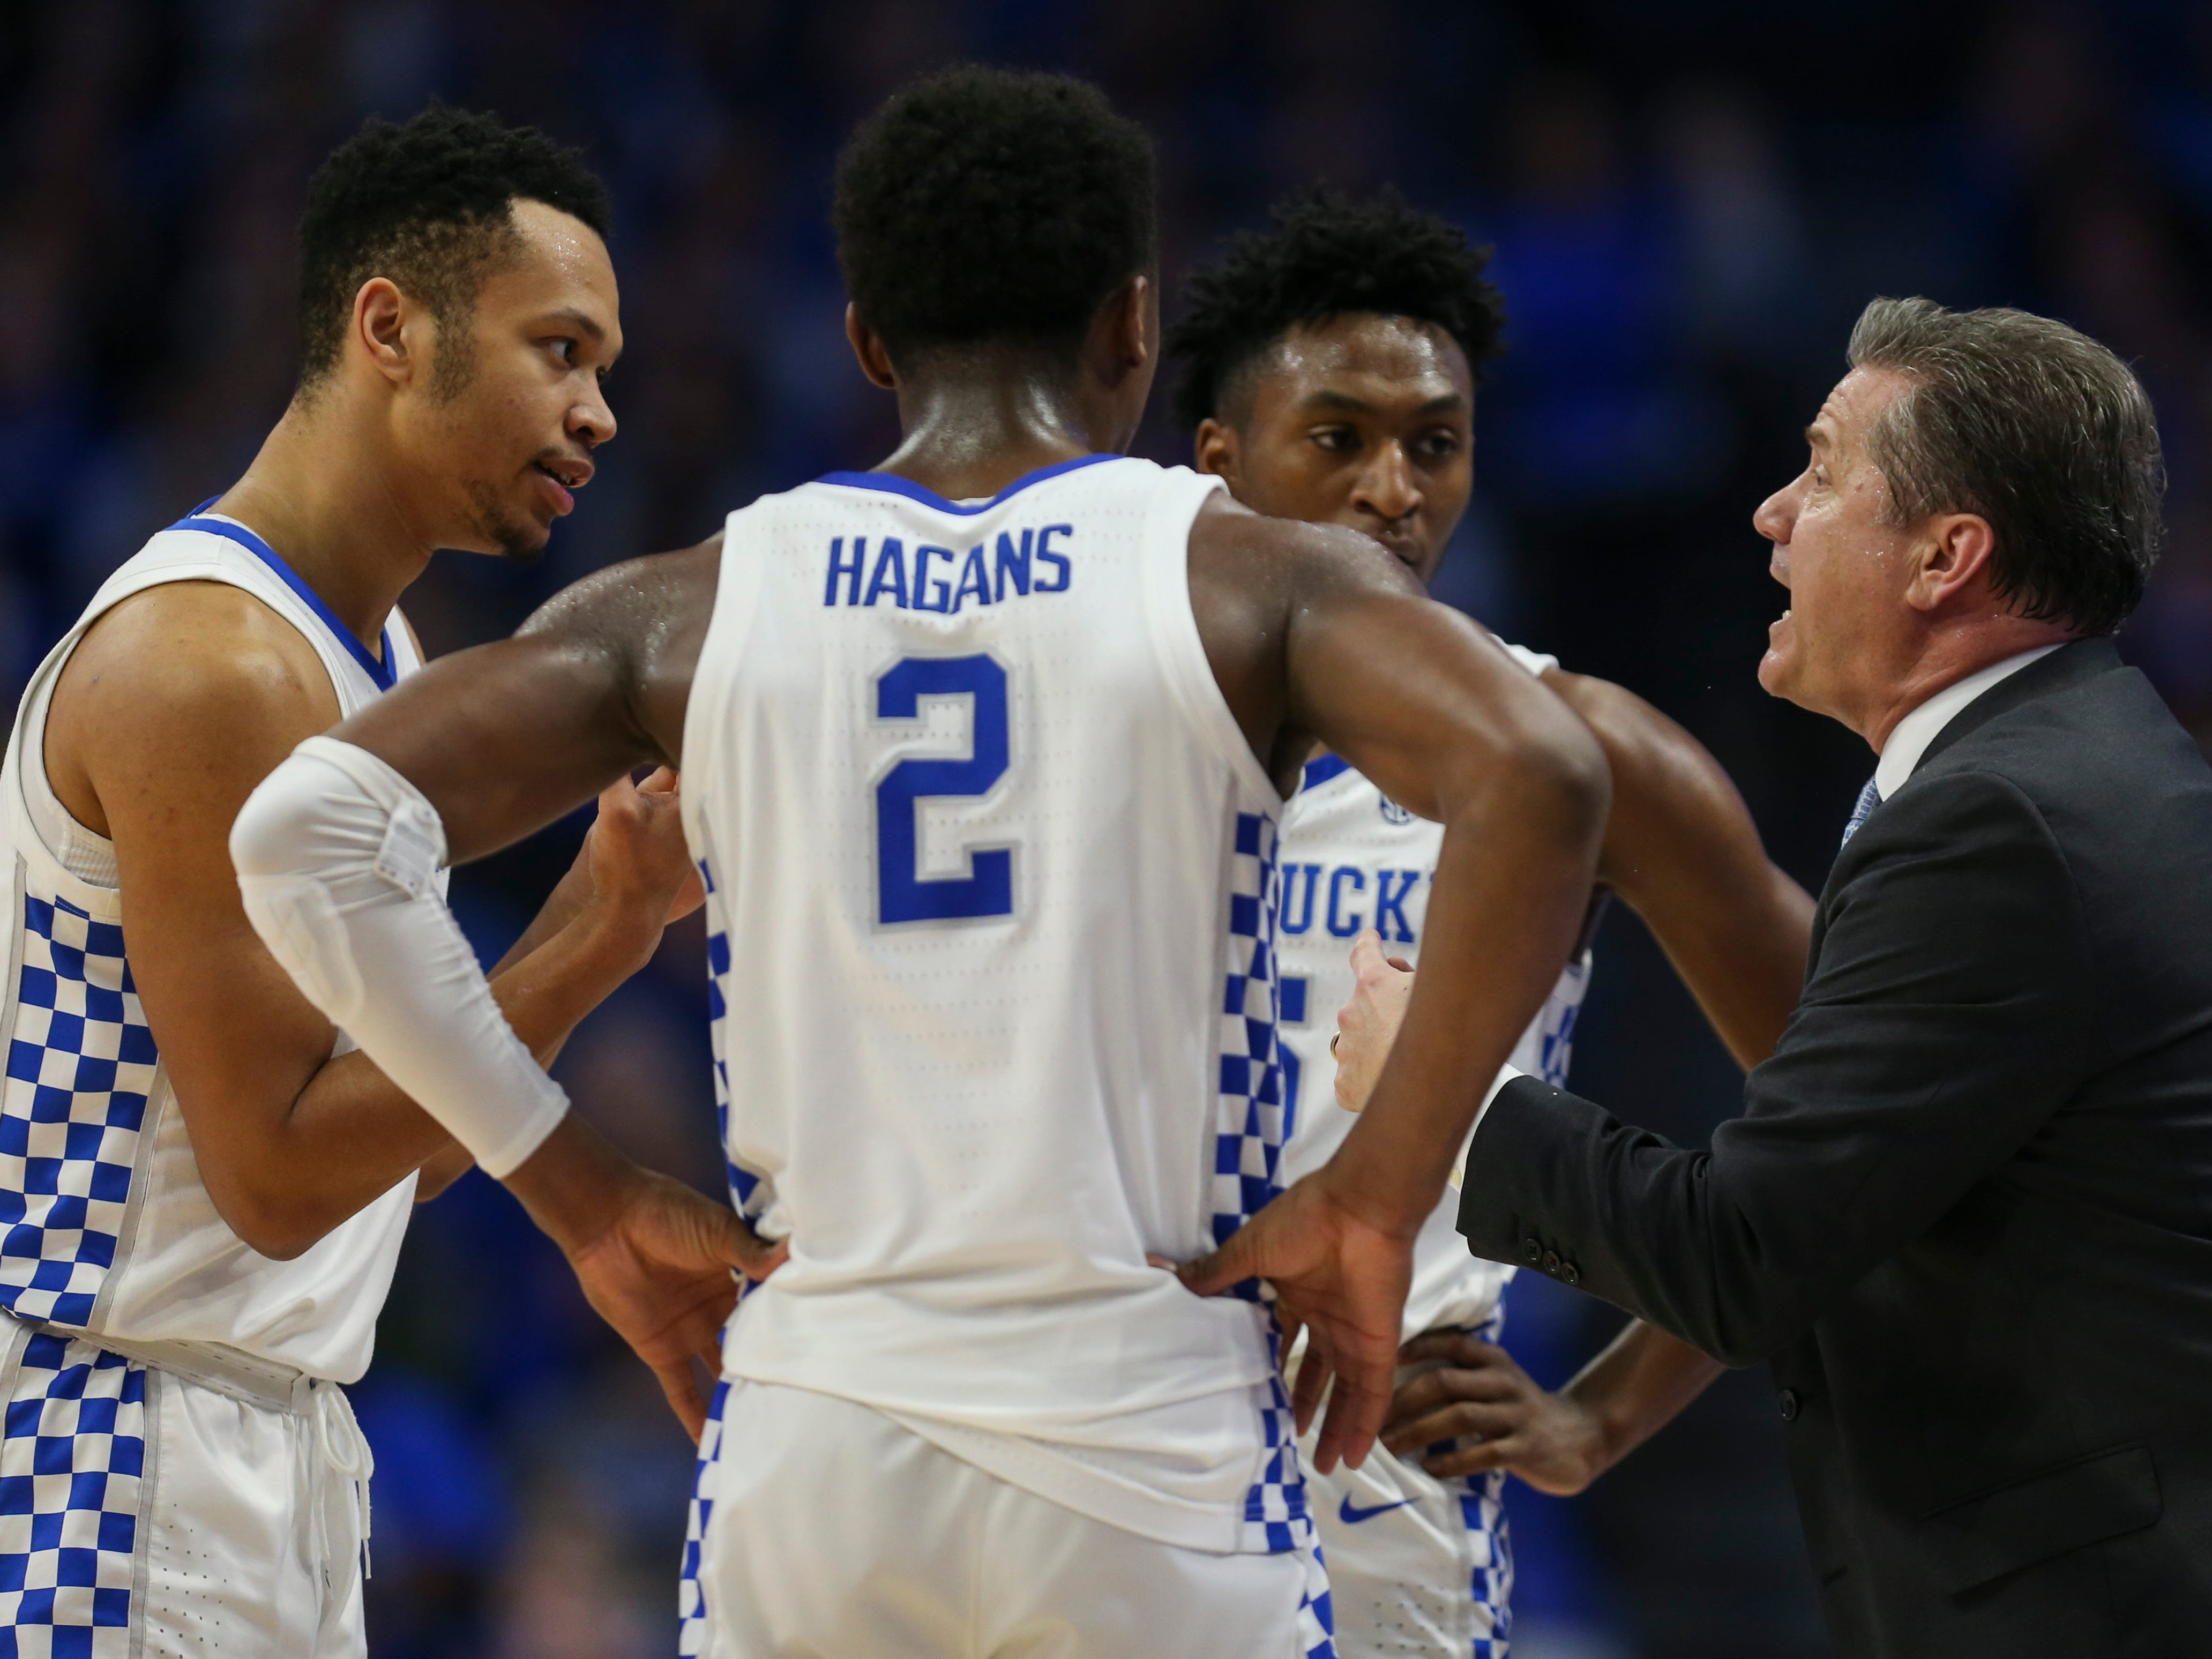 Kentucky''s John Calipari said he loved his team's toughness after the Wildcats cruised past the Gamecocks 76-48. Feb. 5, 2019